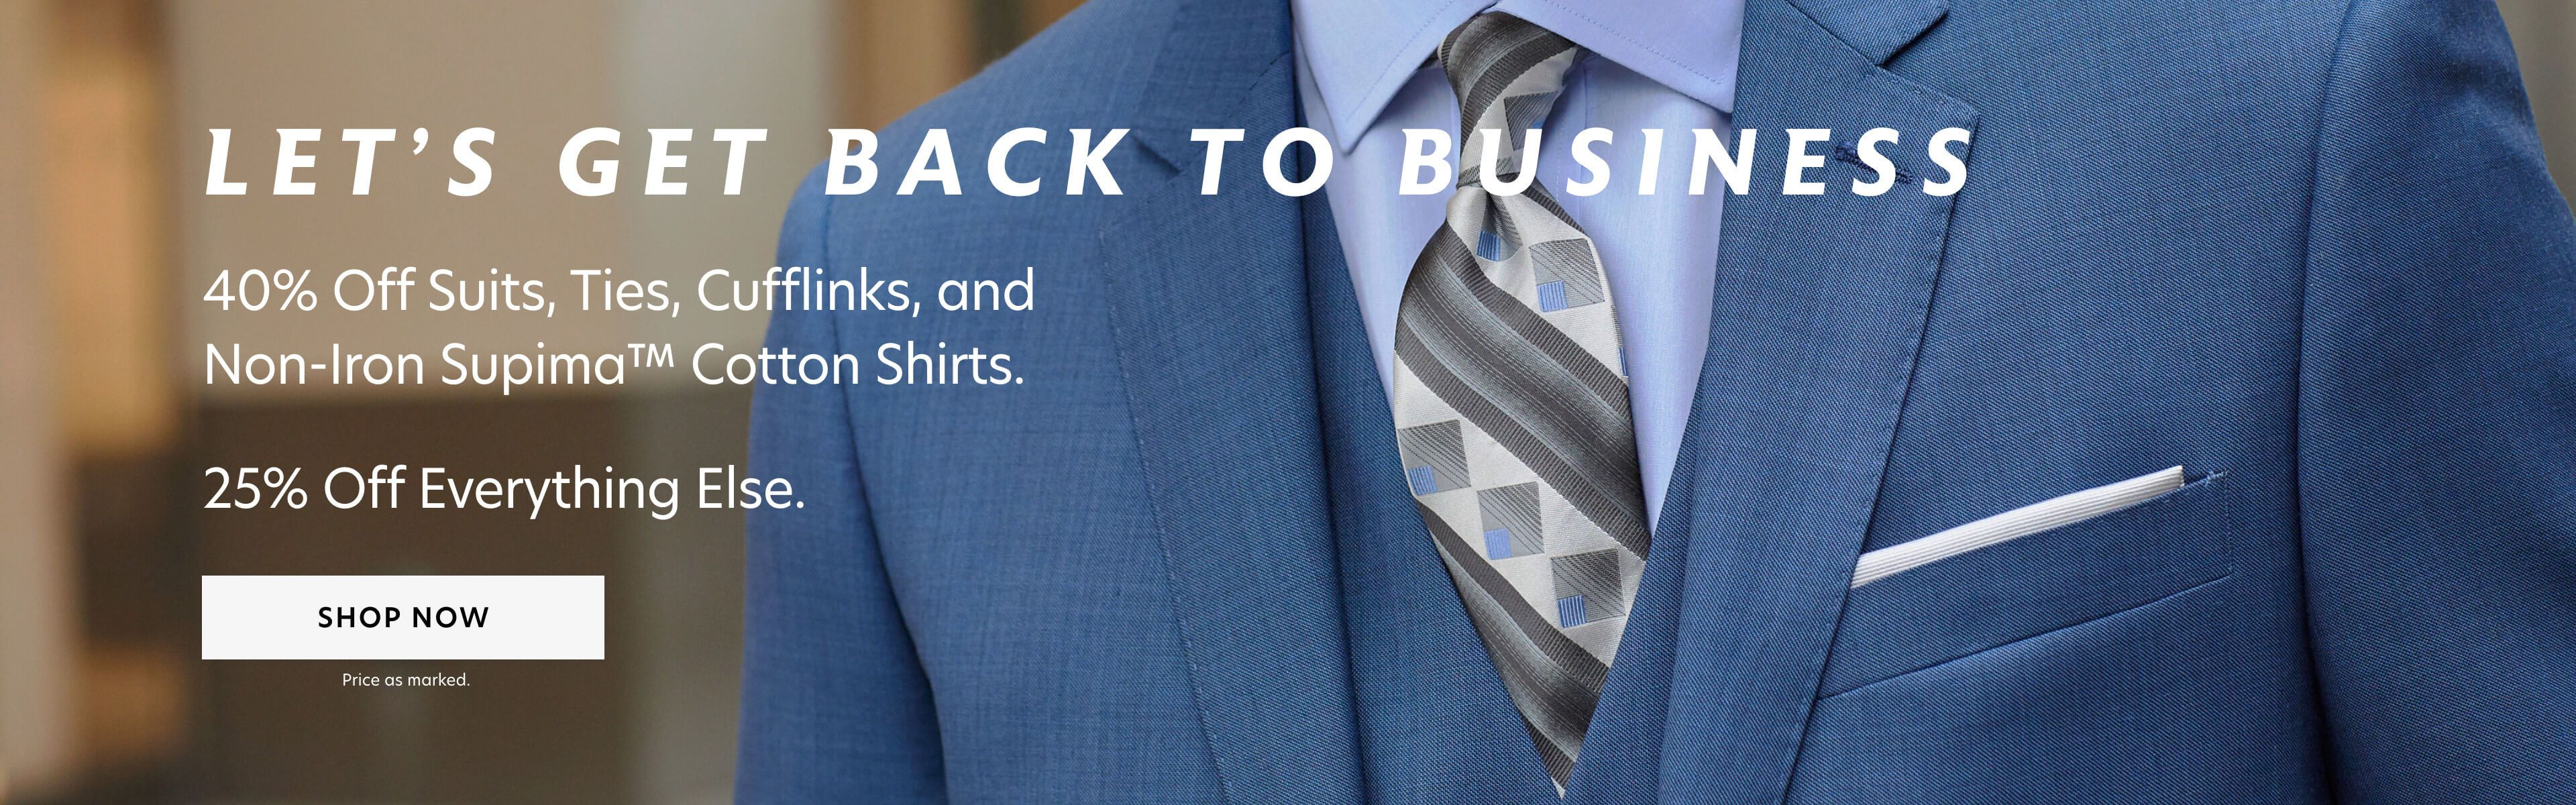 40% Off Business + 25% Off Everything Else